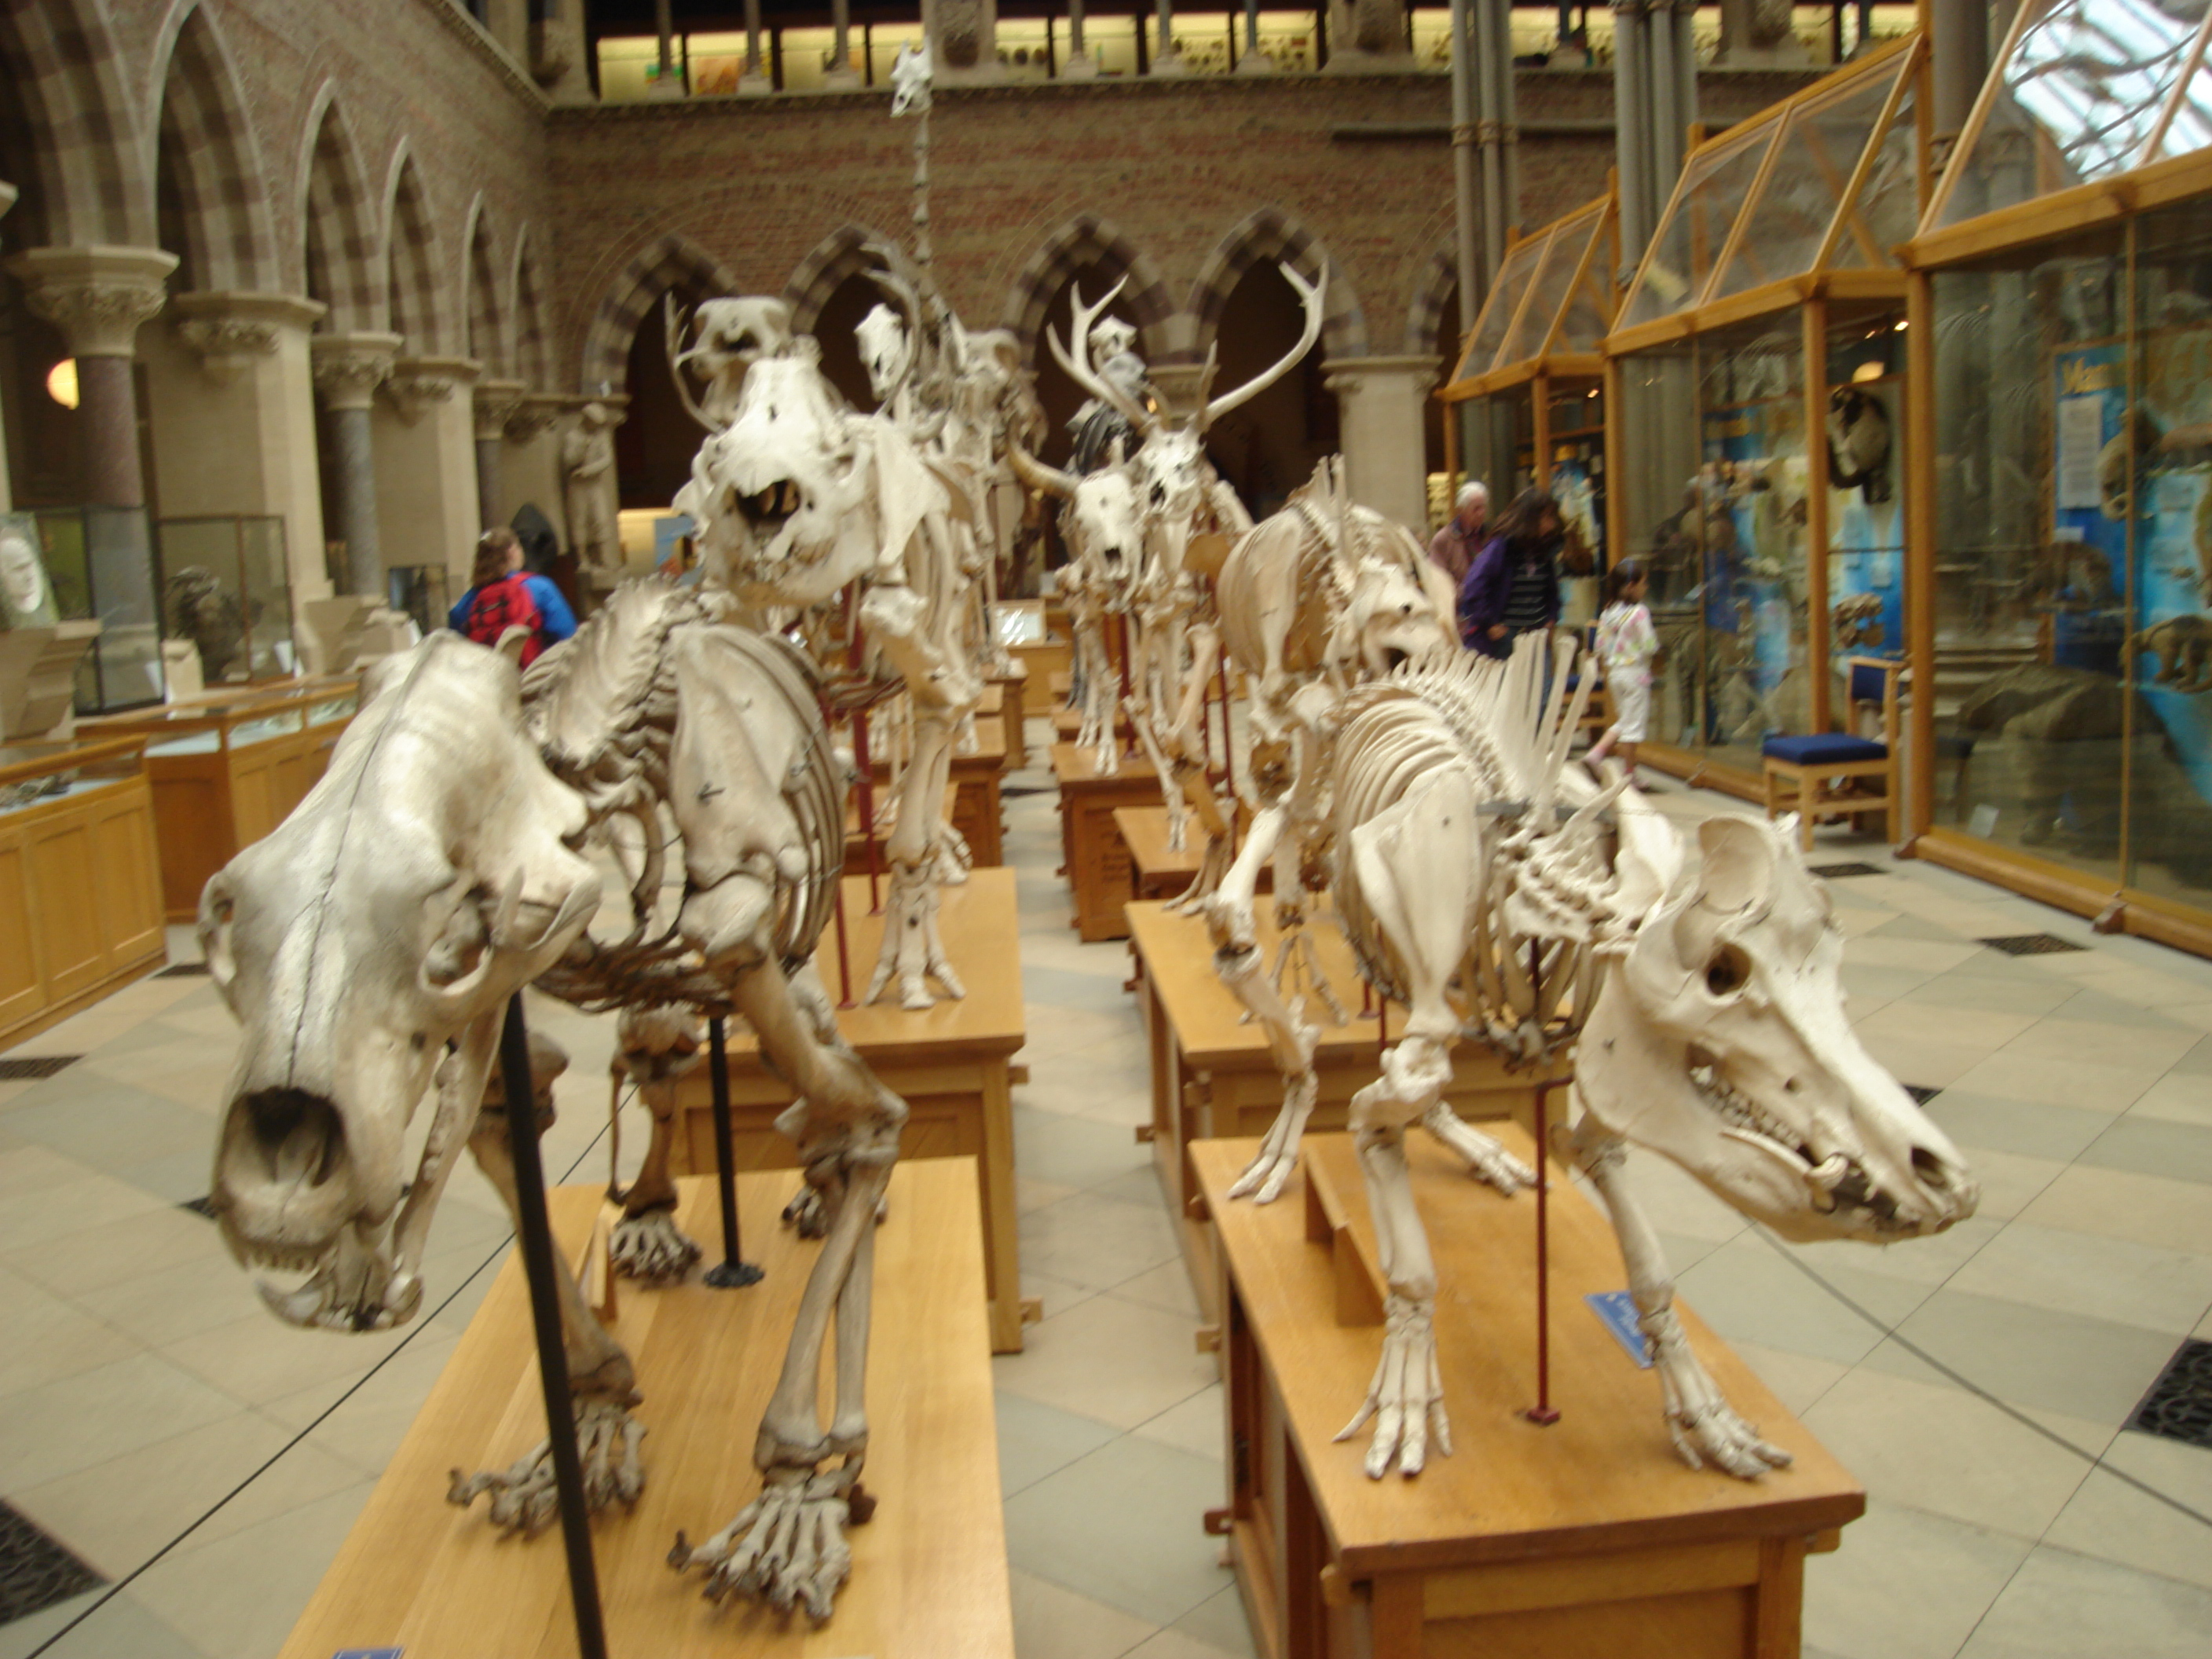 Dinasours in Oxford Museum, UK